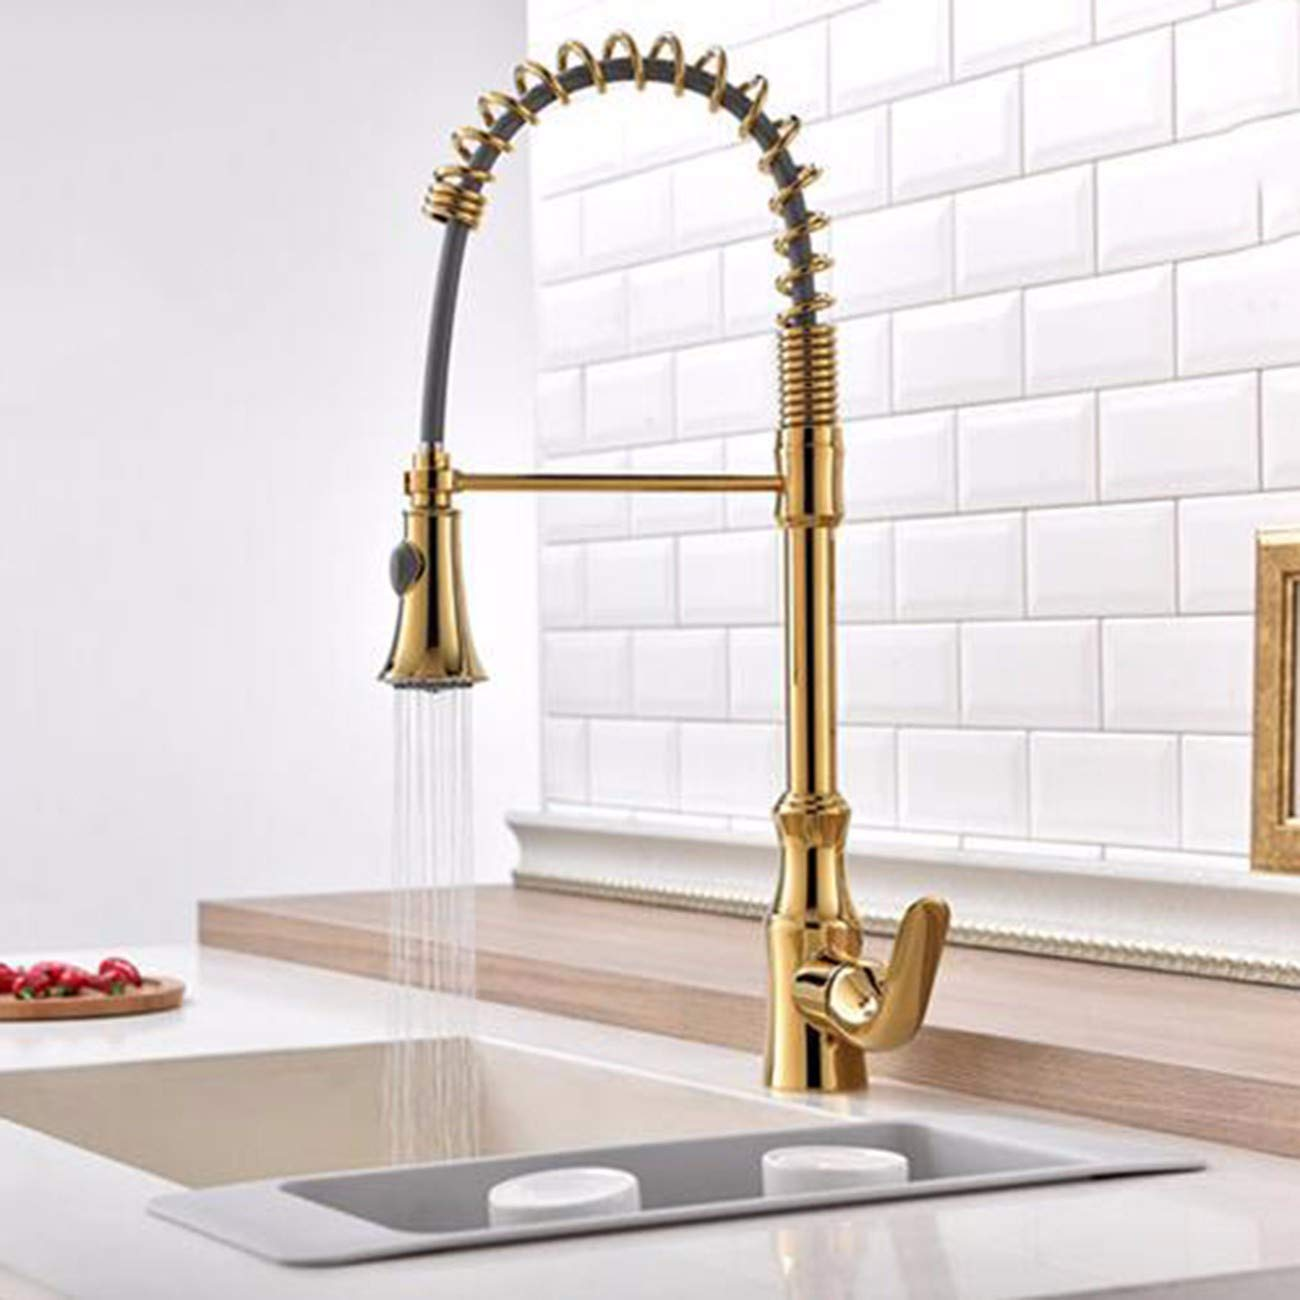 Kitchen Faucet American Copper Plated Gold, Kitchen Spring, Faucet, Gold wash Bowl, Sink, Mixing tap.